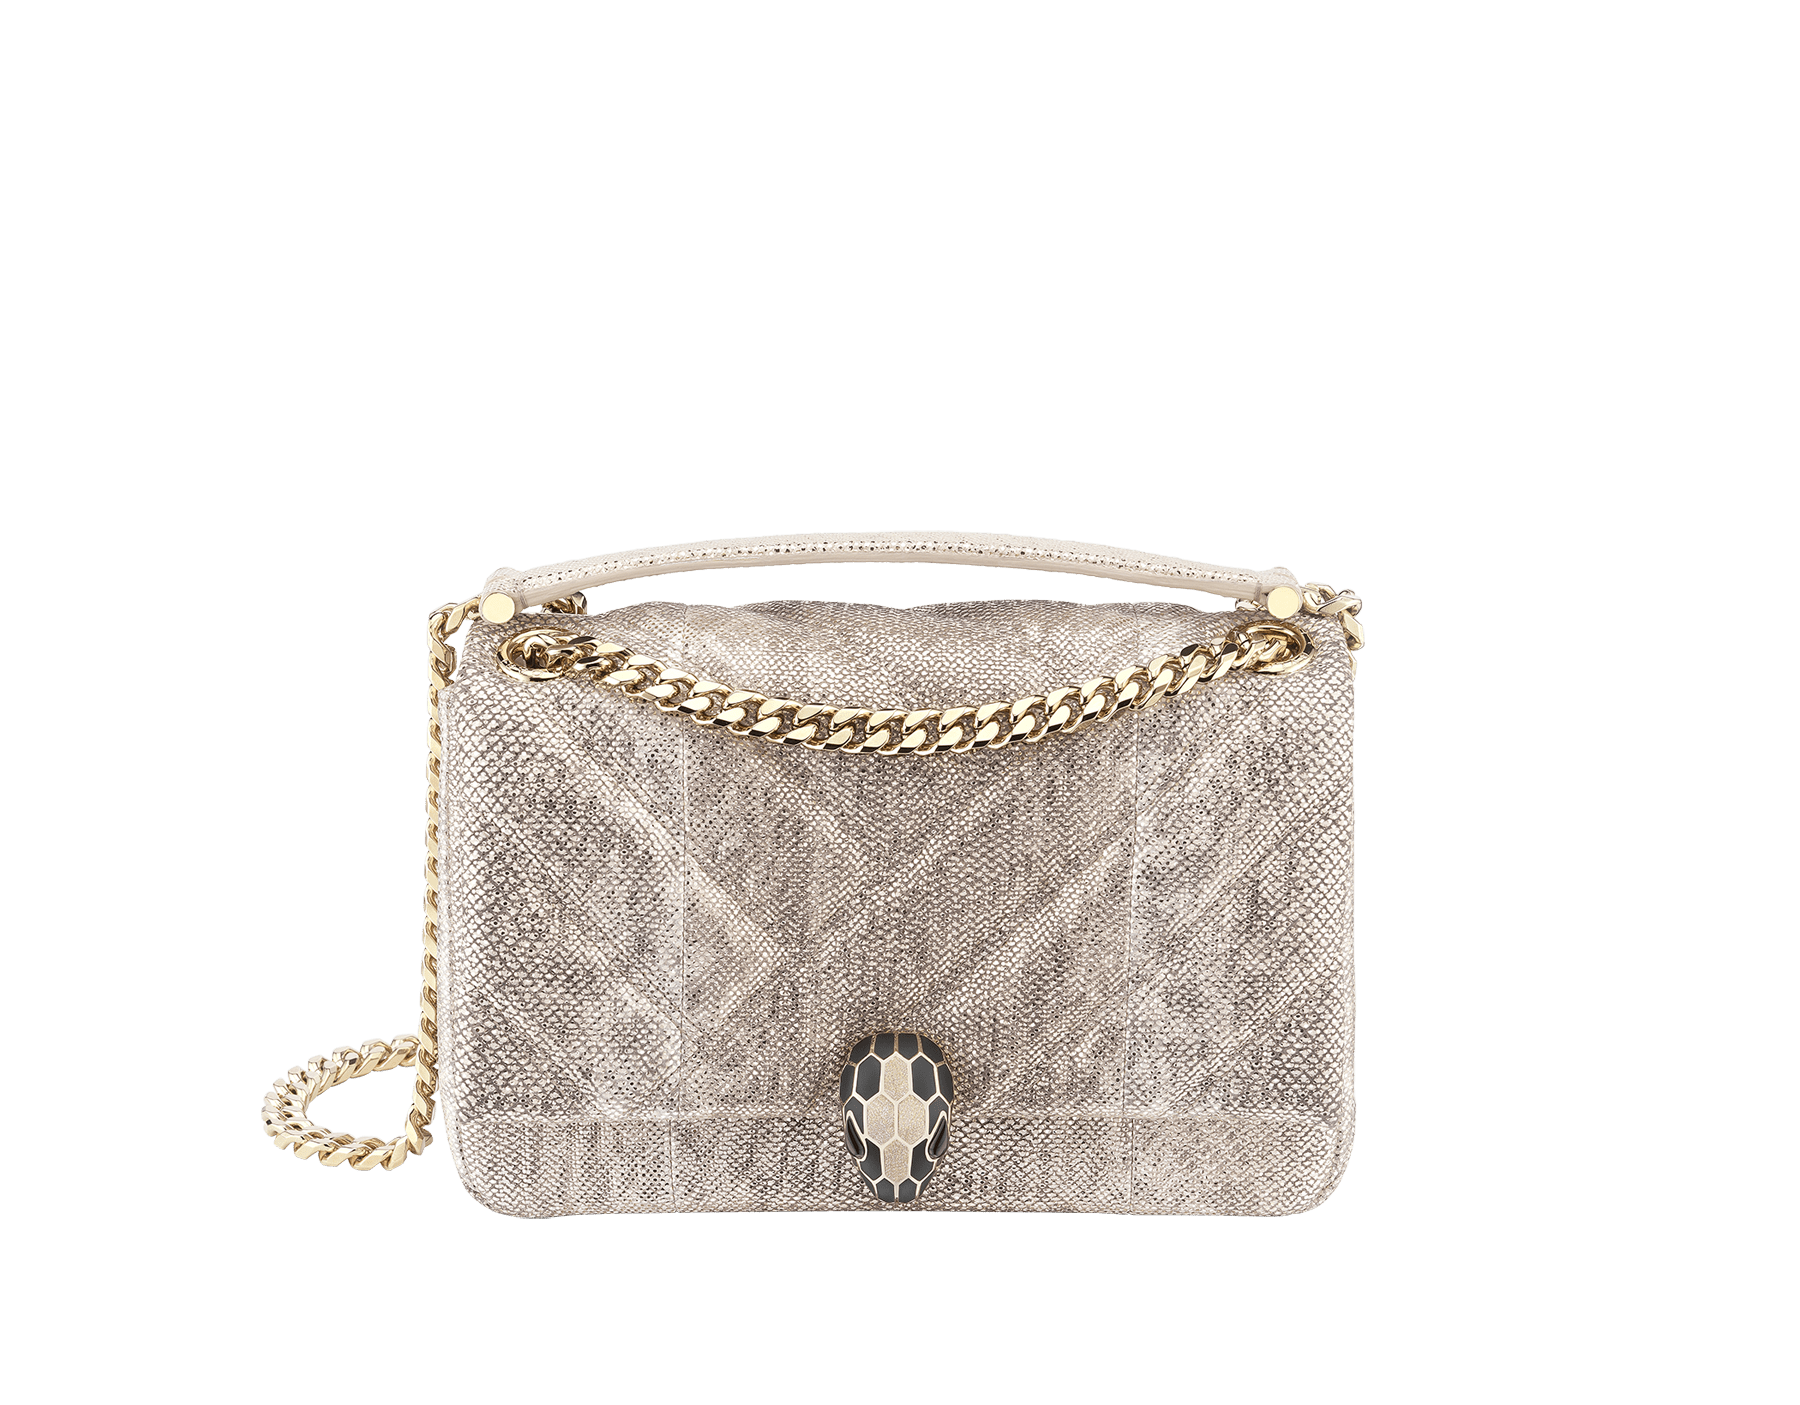 Serpenti Cabochon shoulder bag in soft matelassé charcoal diamond metallic karung skin with graphic motif. Snakehead closure in light gold plated brass decorated with matte black and glitter charcoal diamond enamel, and black onyx eyes. 981-MK image 1